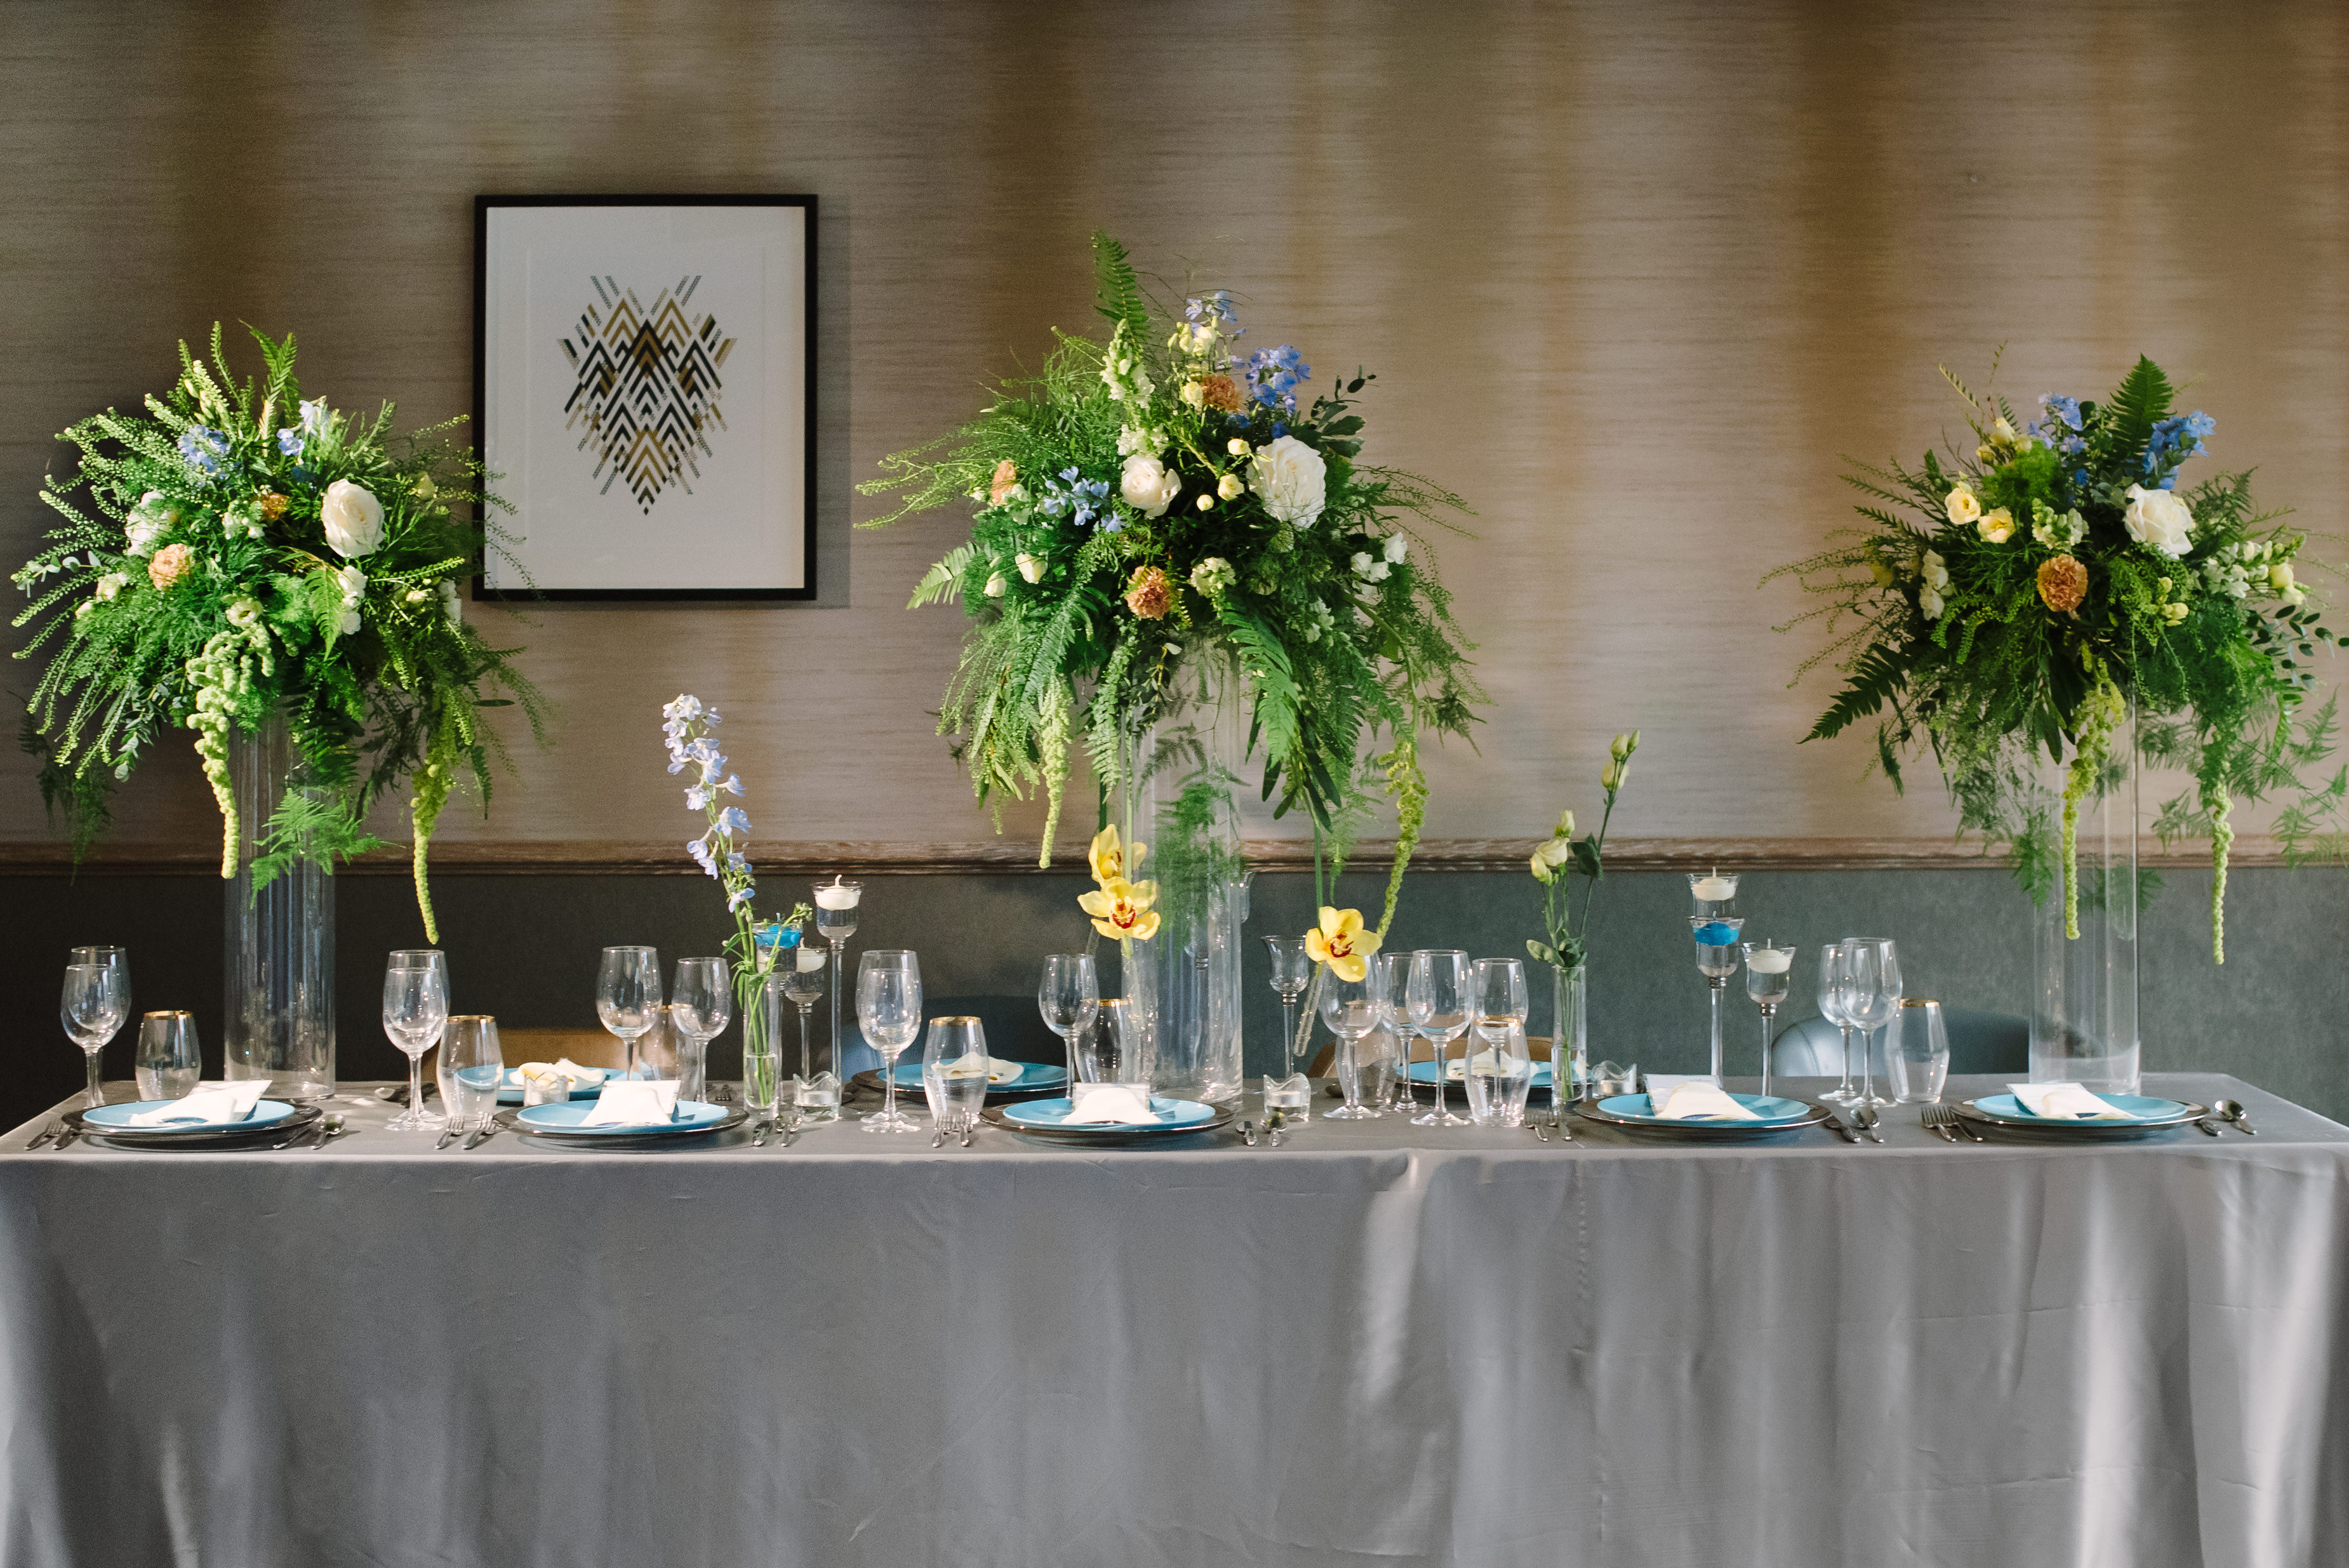 Contemporary modern wedding planner based in Surrey